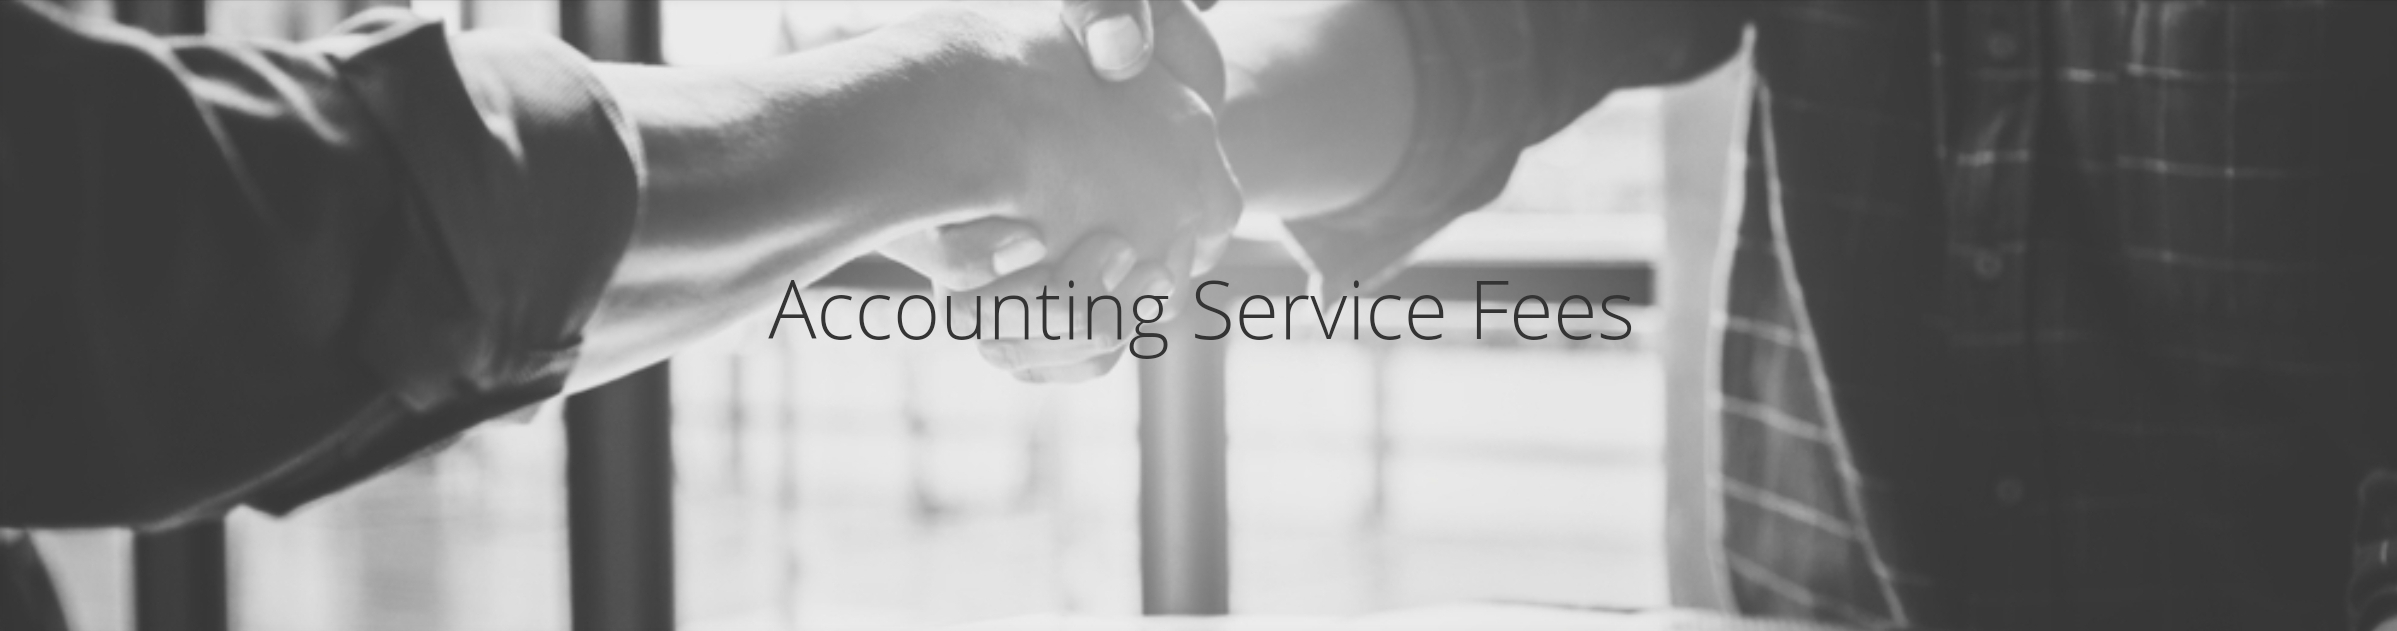 Accounting Service Fees at Annette&Co.